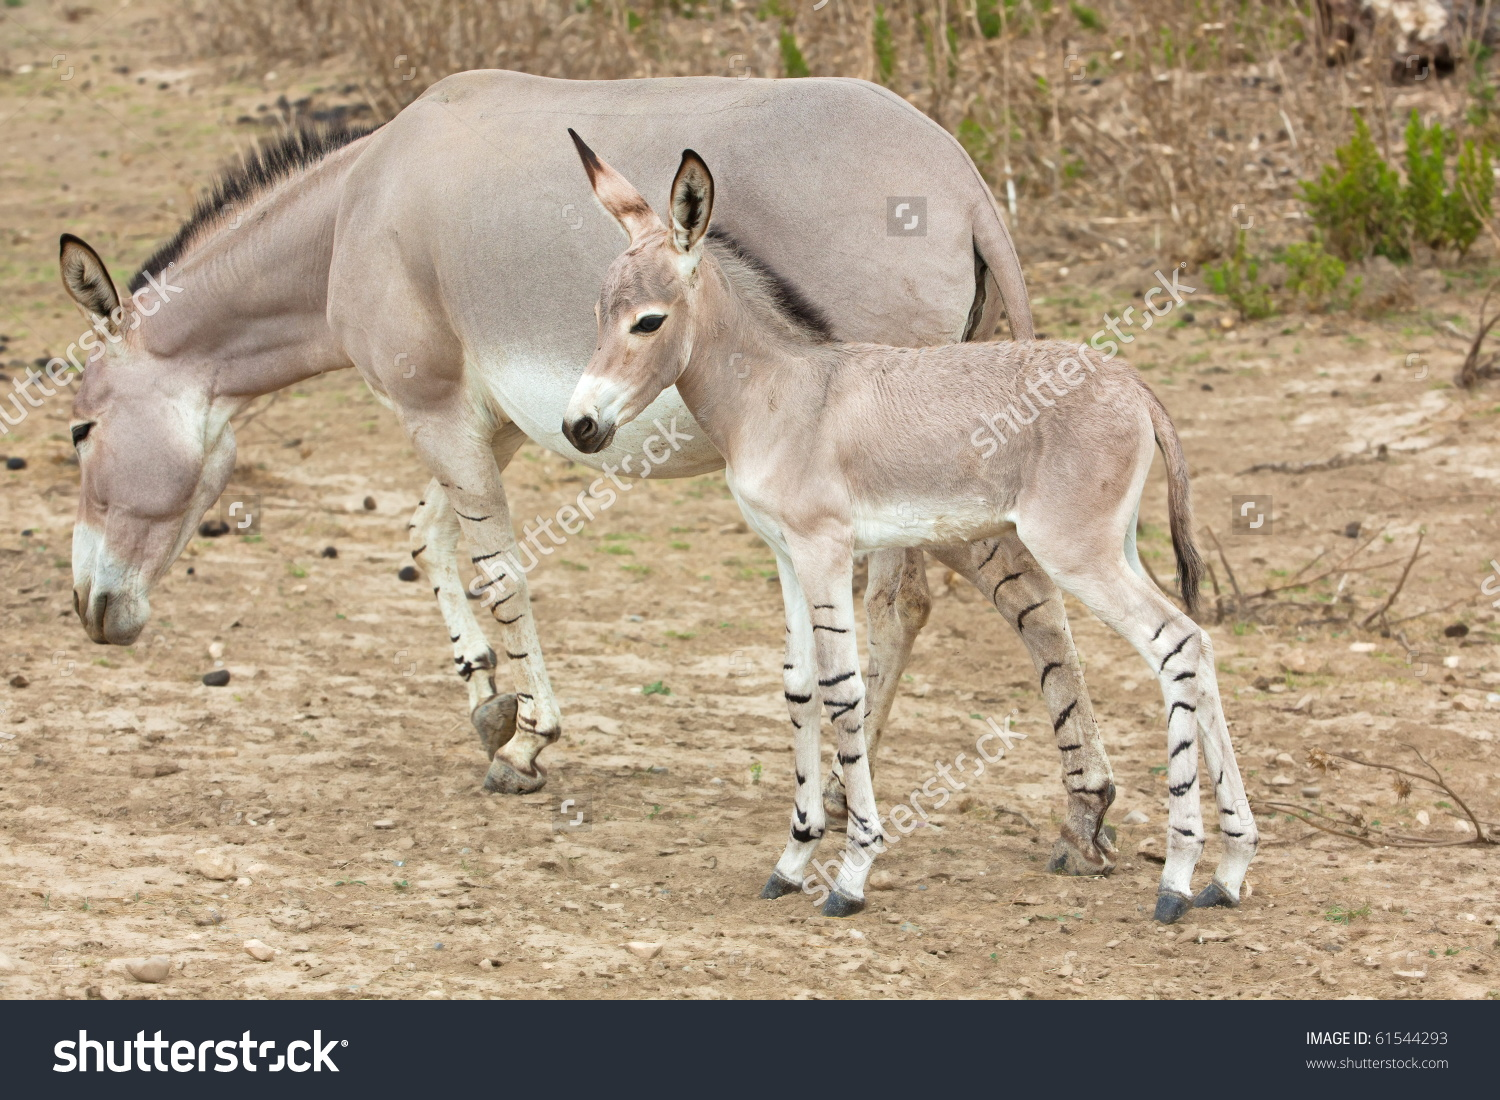 Somali Wild Ass Baby And Mother In Nature Stock Photo 61544293.